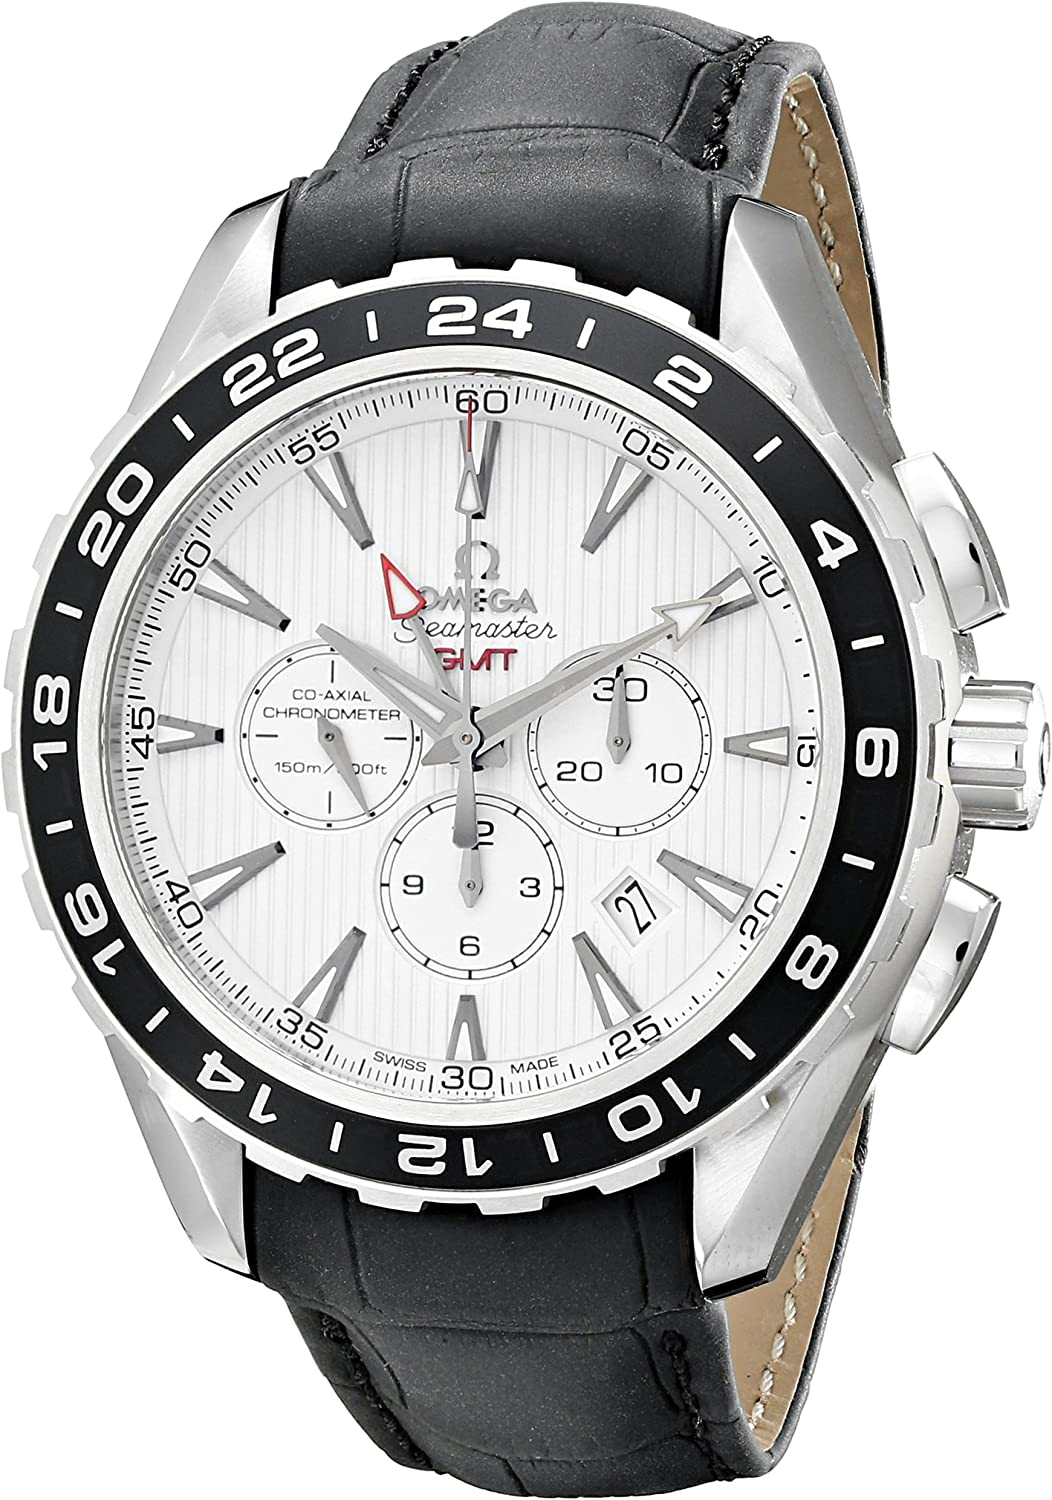 Omega Men s 231.13.44.52.04.001 Aqua Terra Automatic Stainless Steel Watch with Black Leather Band